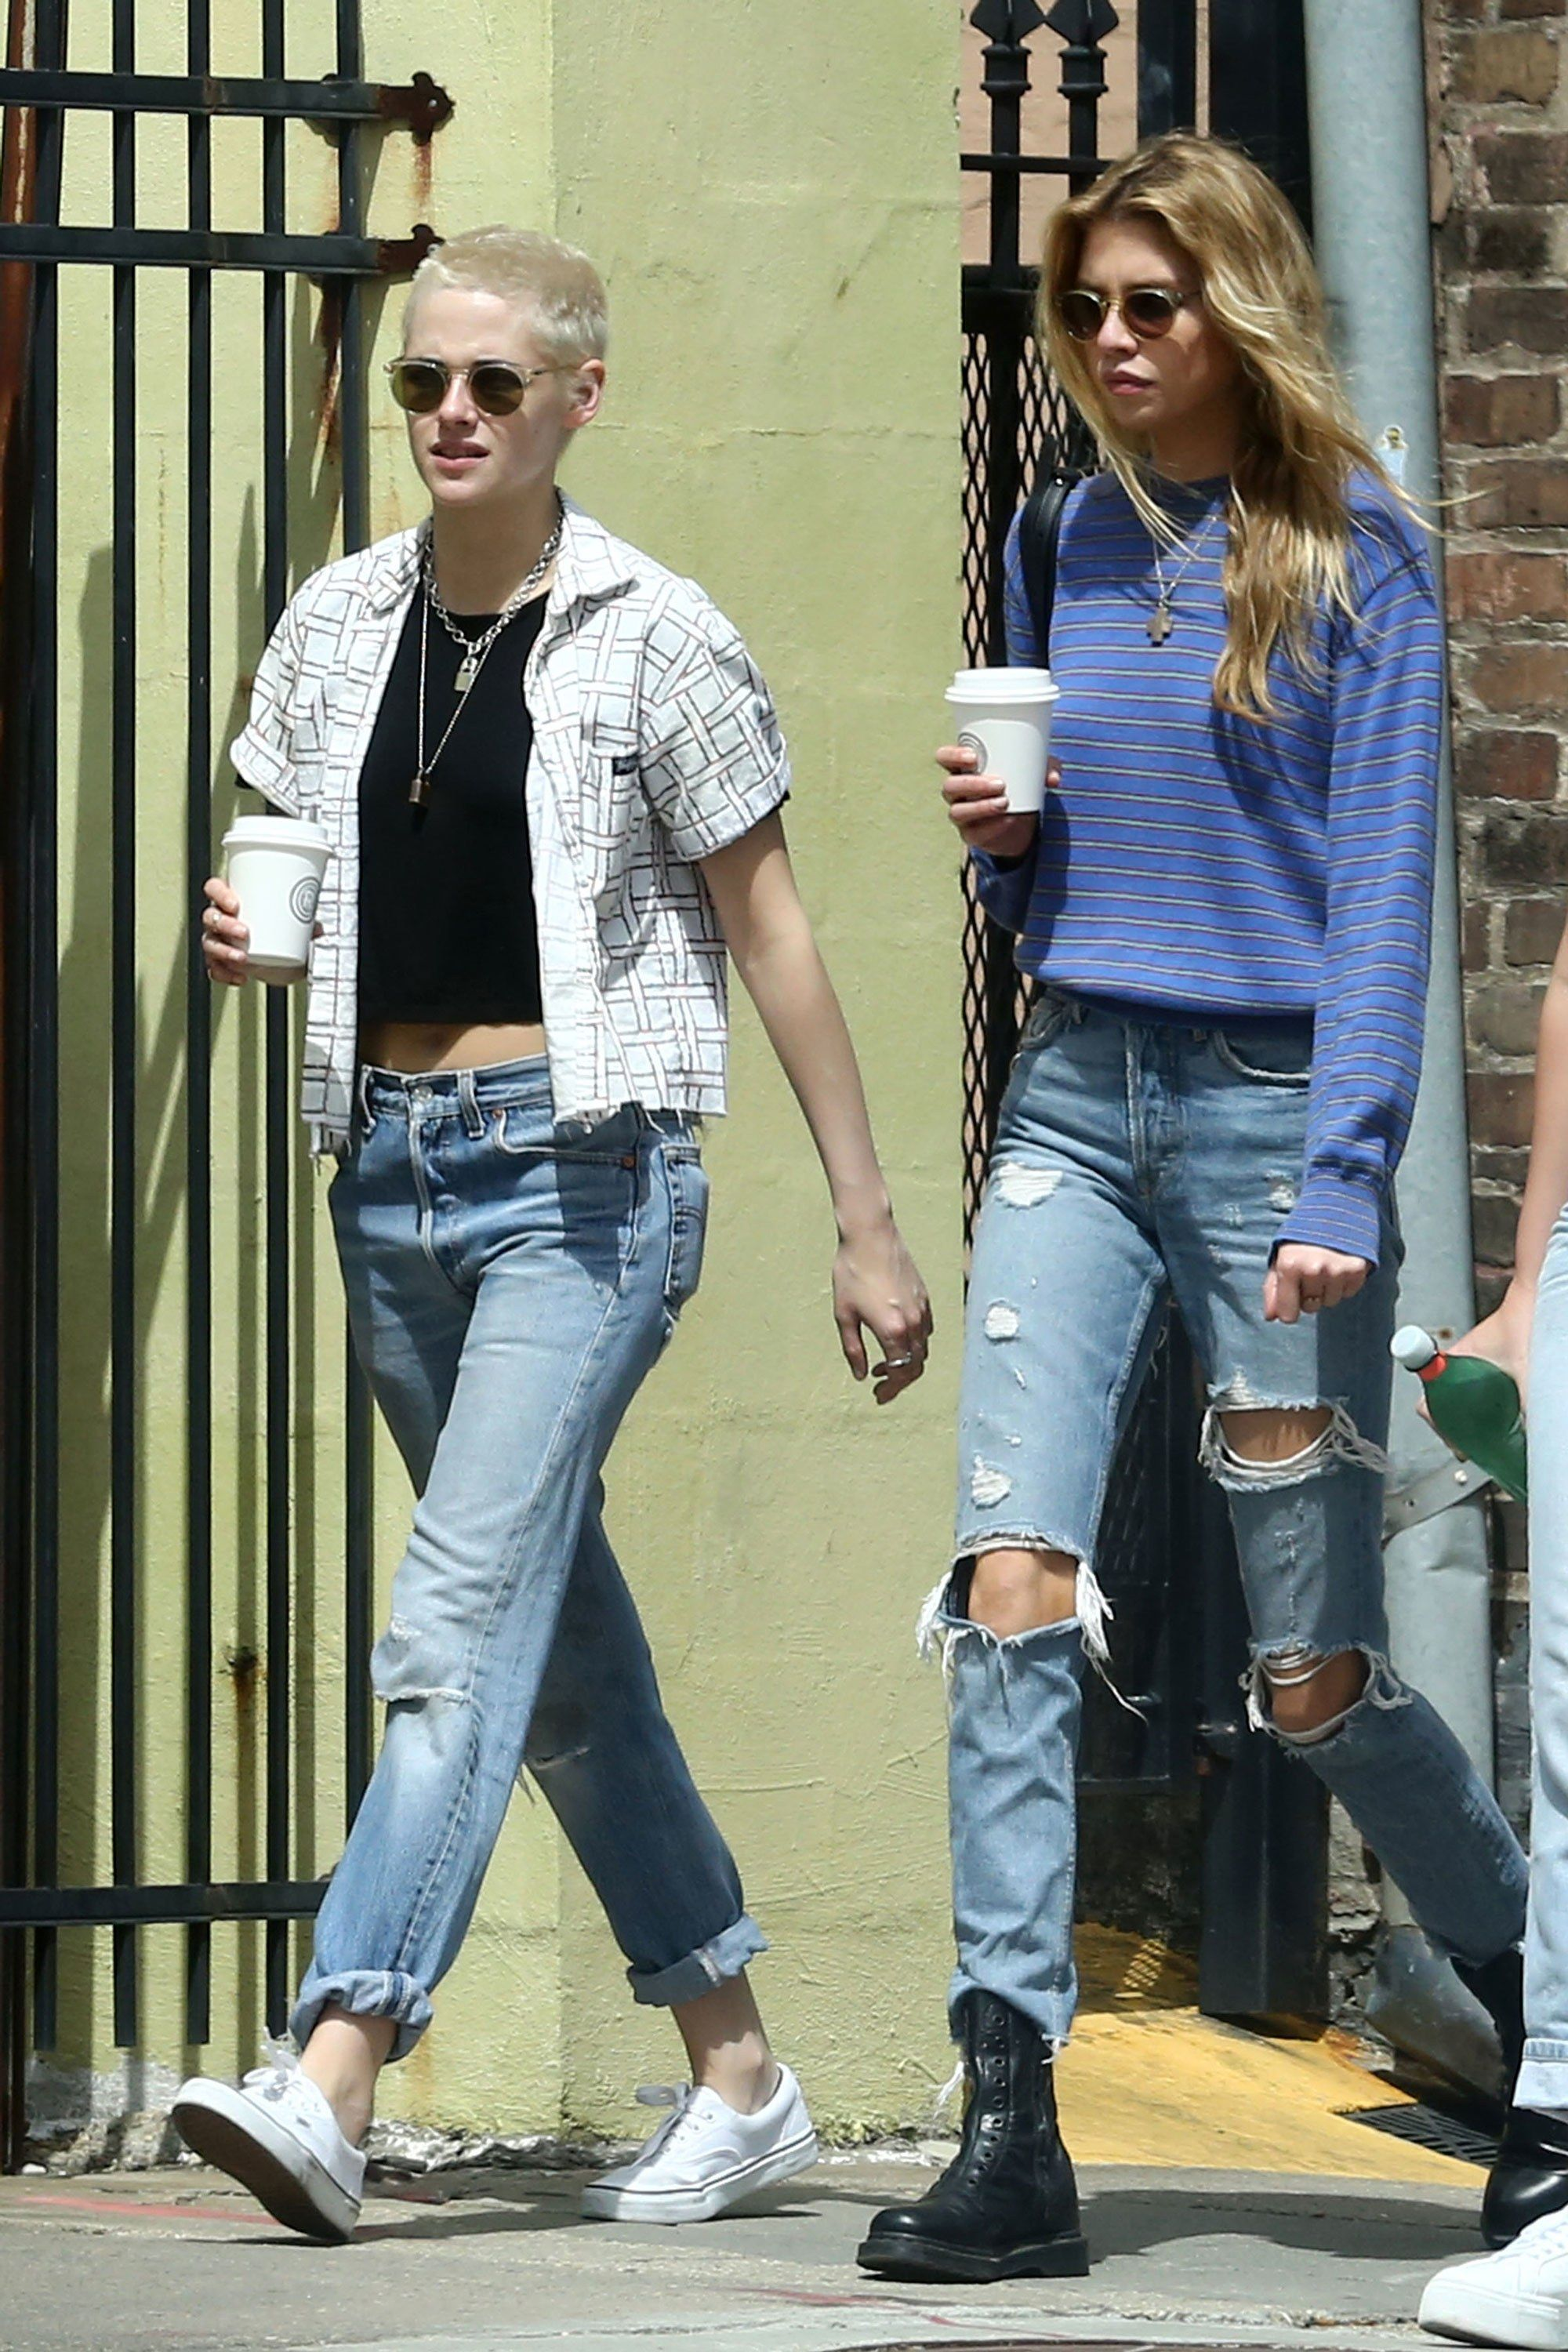 Kristen Stewart and Stella Maxwell Are Already Perfectly in Sync